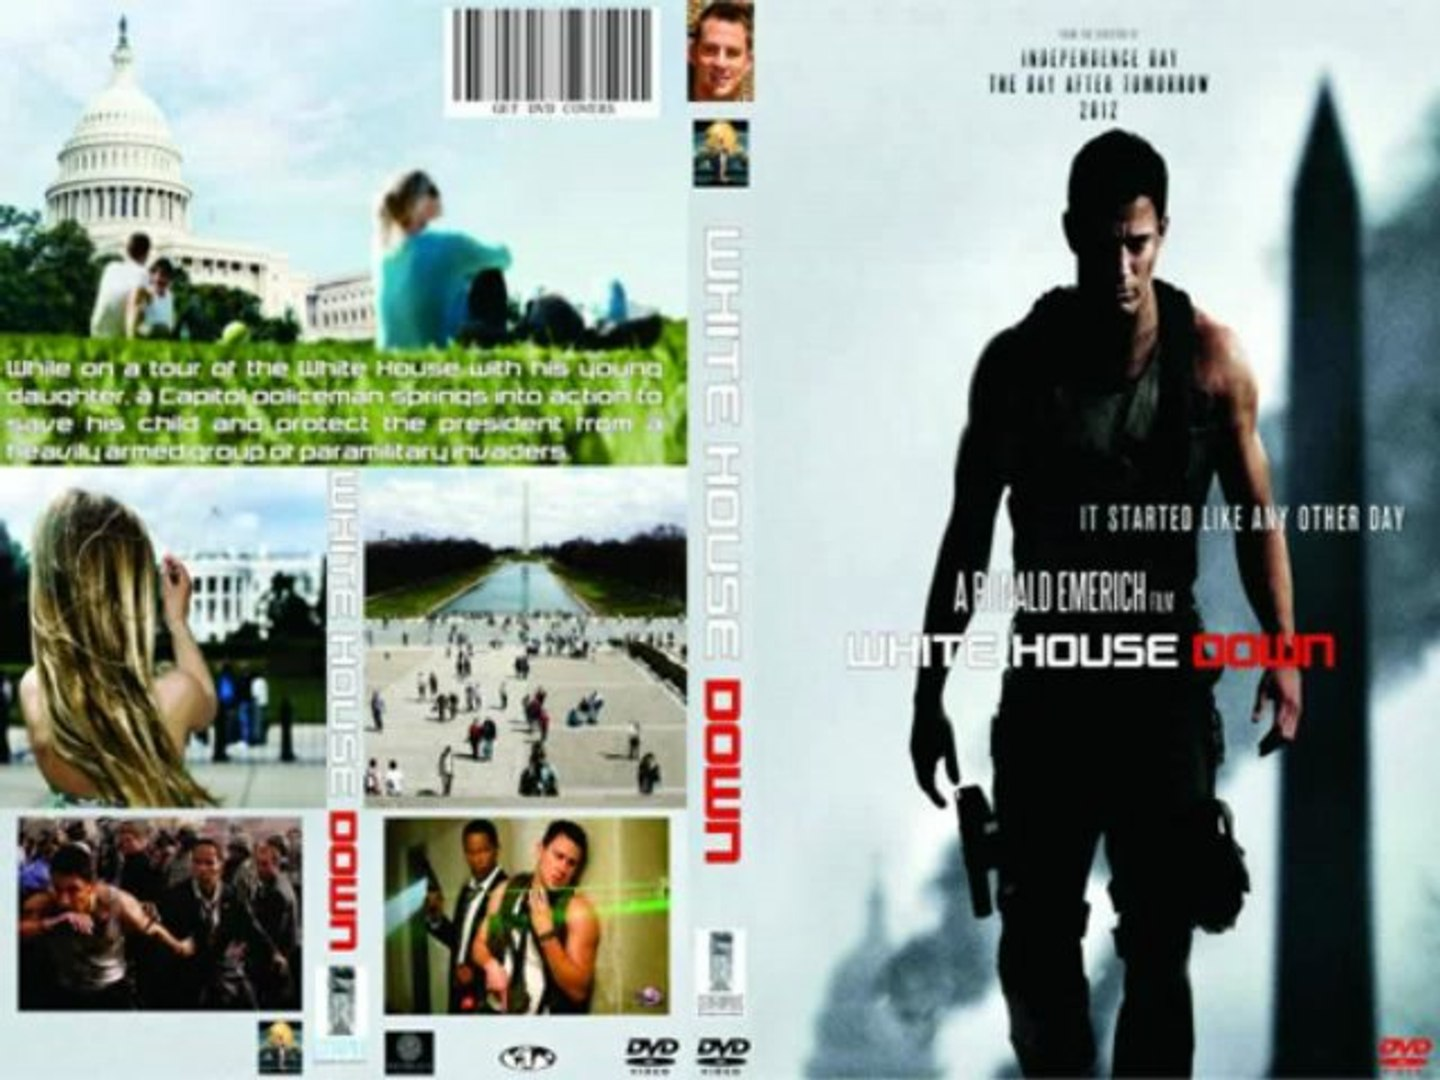 [FuLL MOVIE] ++White House Down Online Movie Free Download [streaming movie uk]